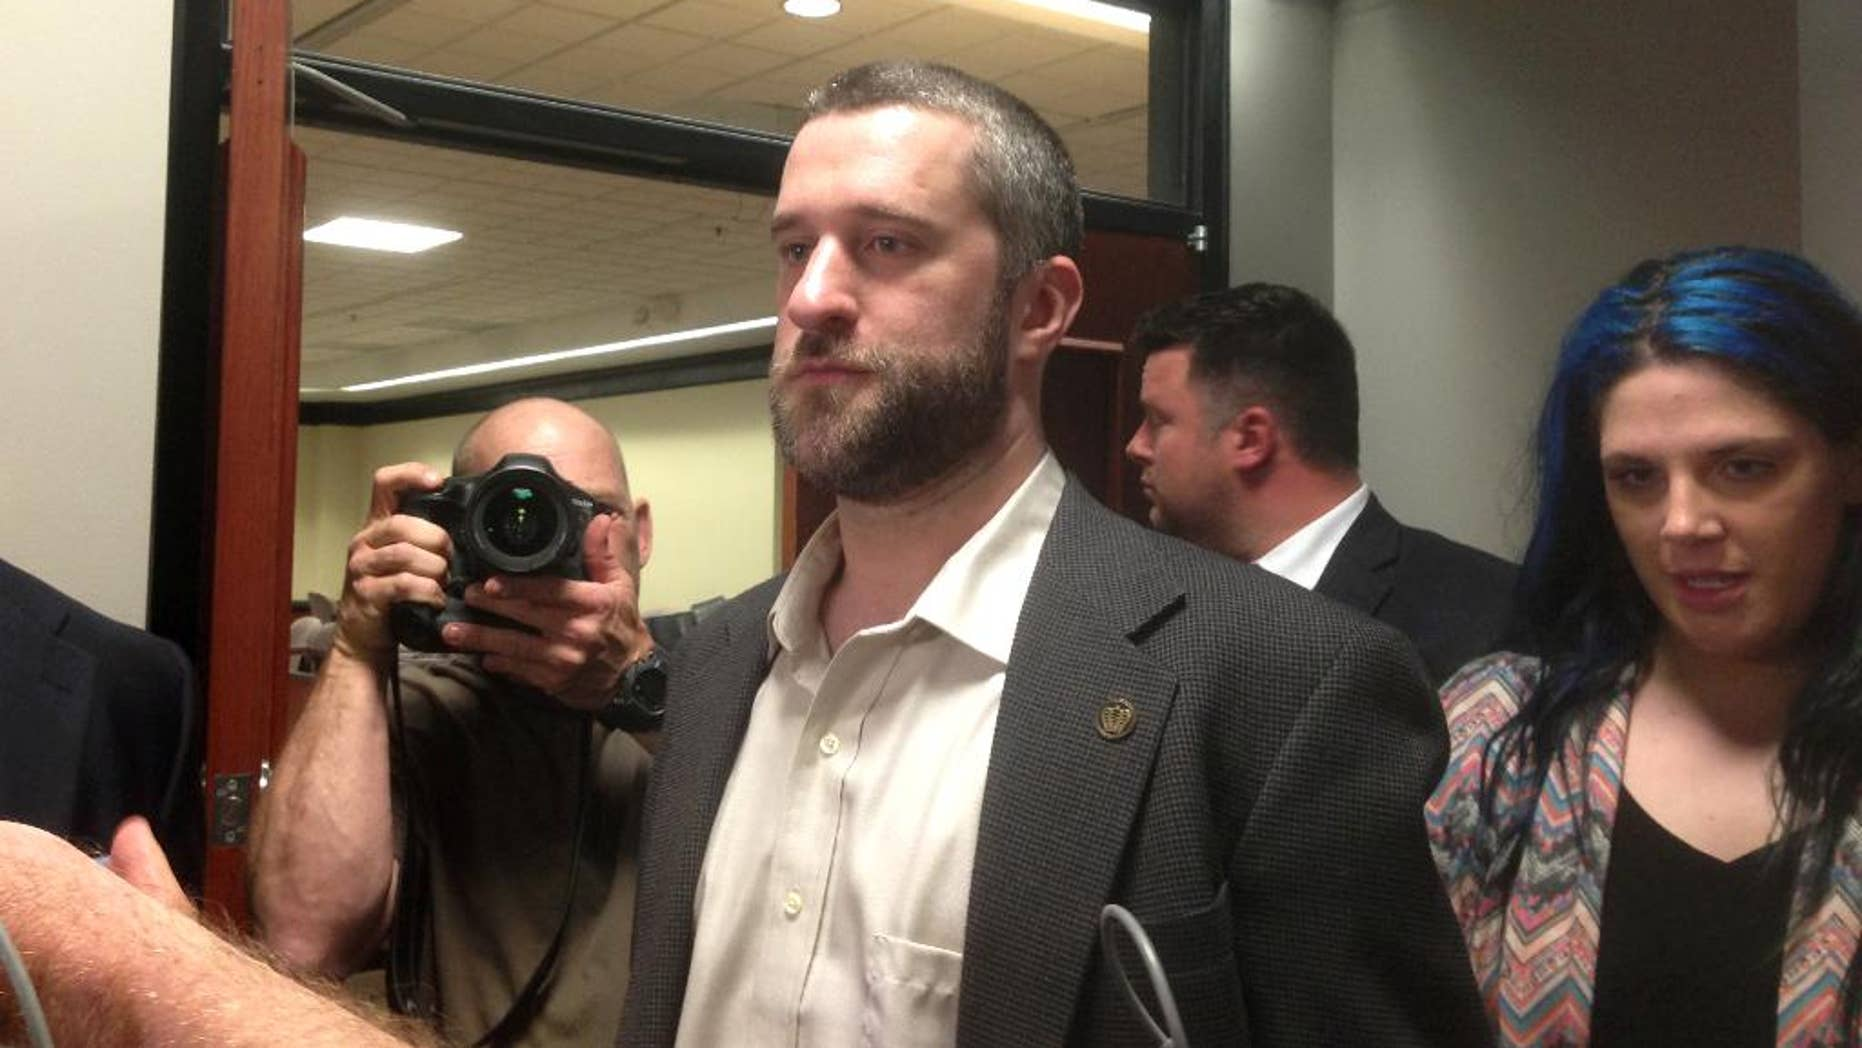 """FILE - In this May 29, 2015, file photo, television actor Dustin Diamond, center, leaves court in Port Washington, Wisc., after being convicted of two misdemeanors stemming from a barroom fight on Christmas Day 2014. Diamond, of """"Saved by the Bell"""" fame, is set to be sentenced Thursday, June 25, 2015. (AP Photo/Dana Ferguson, File)"""